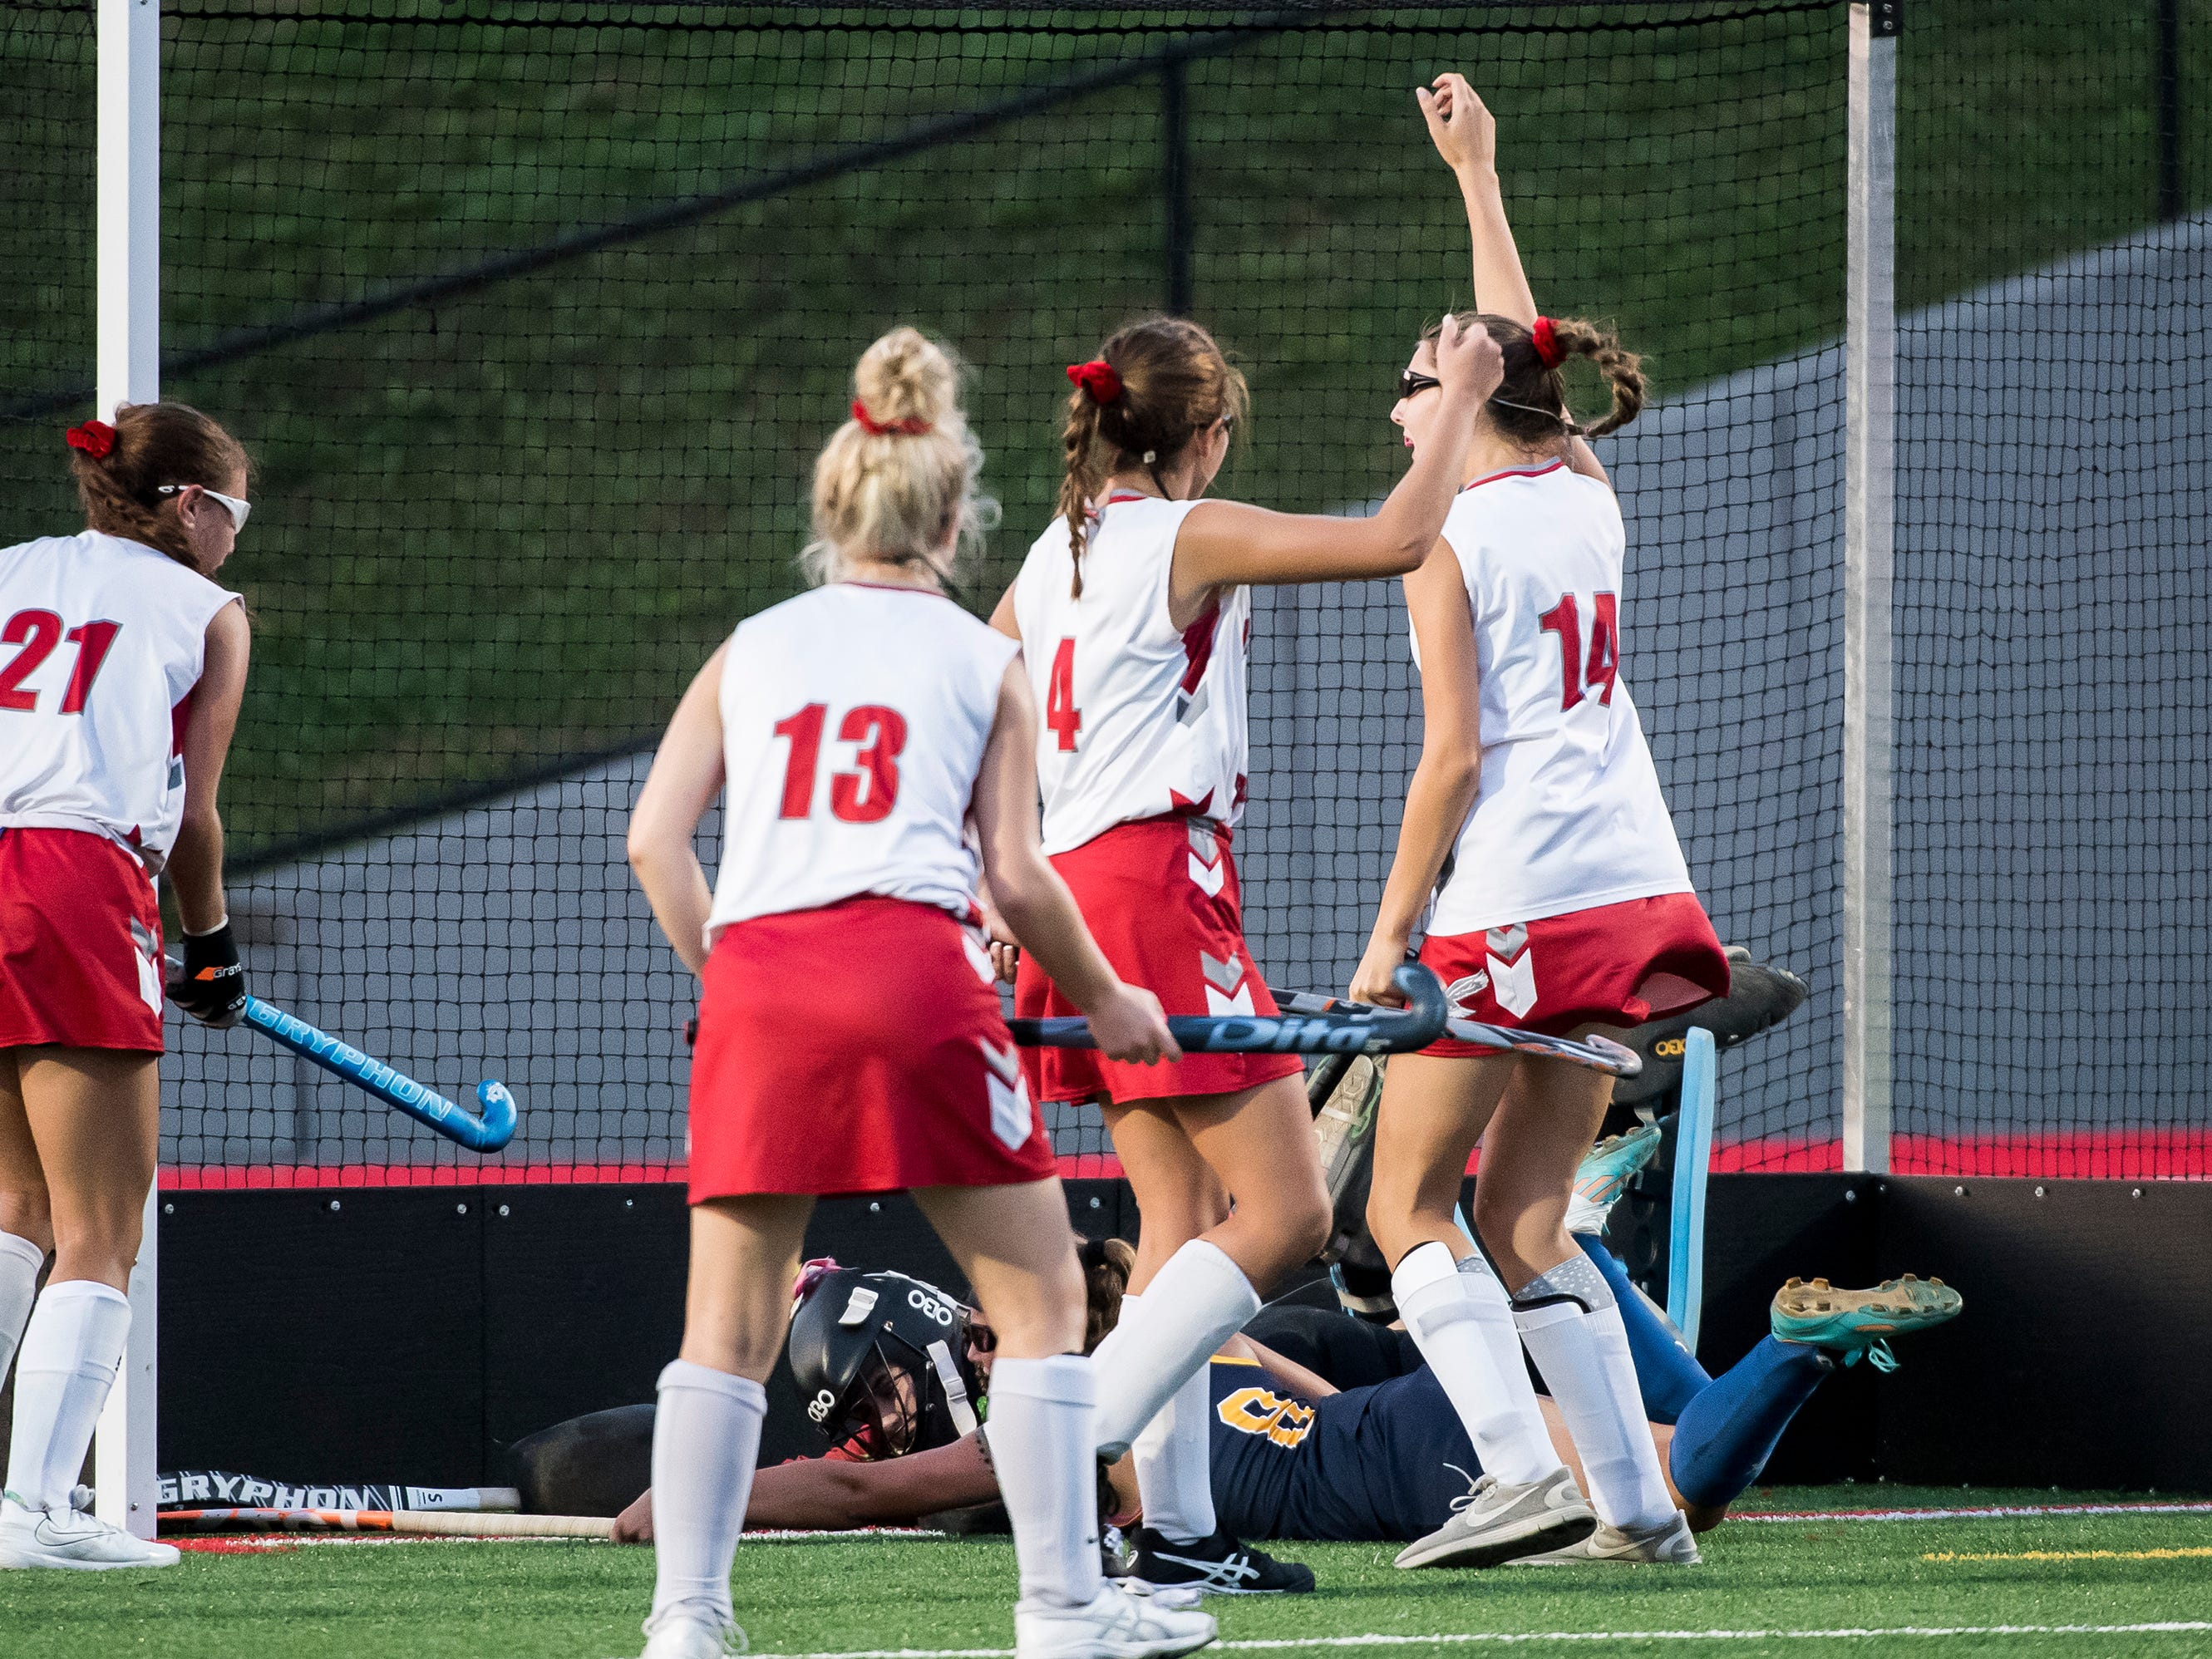 Bermudian Springs players celebrate after scoring a last second goal against Littlestown on Tuesday, October 9, 2018. The Eagles won 4-0.